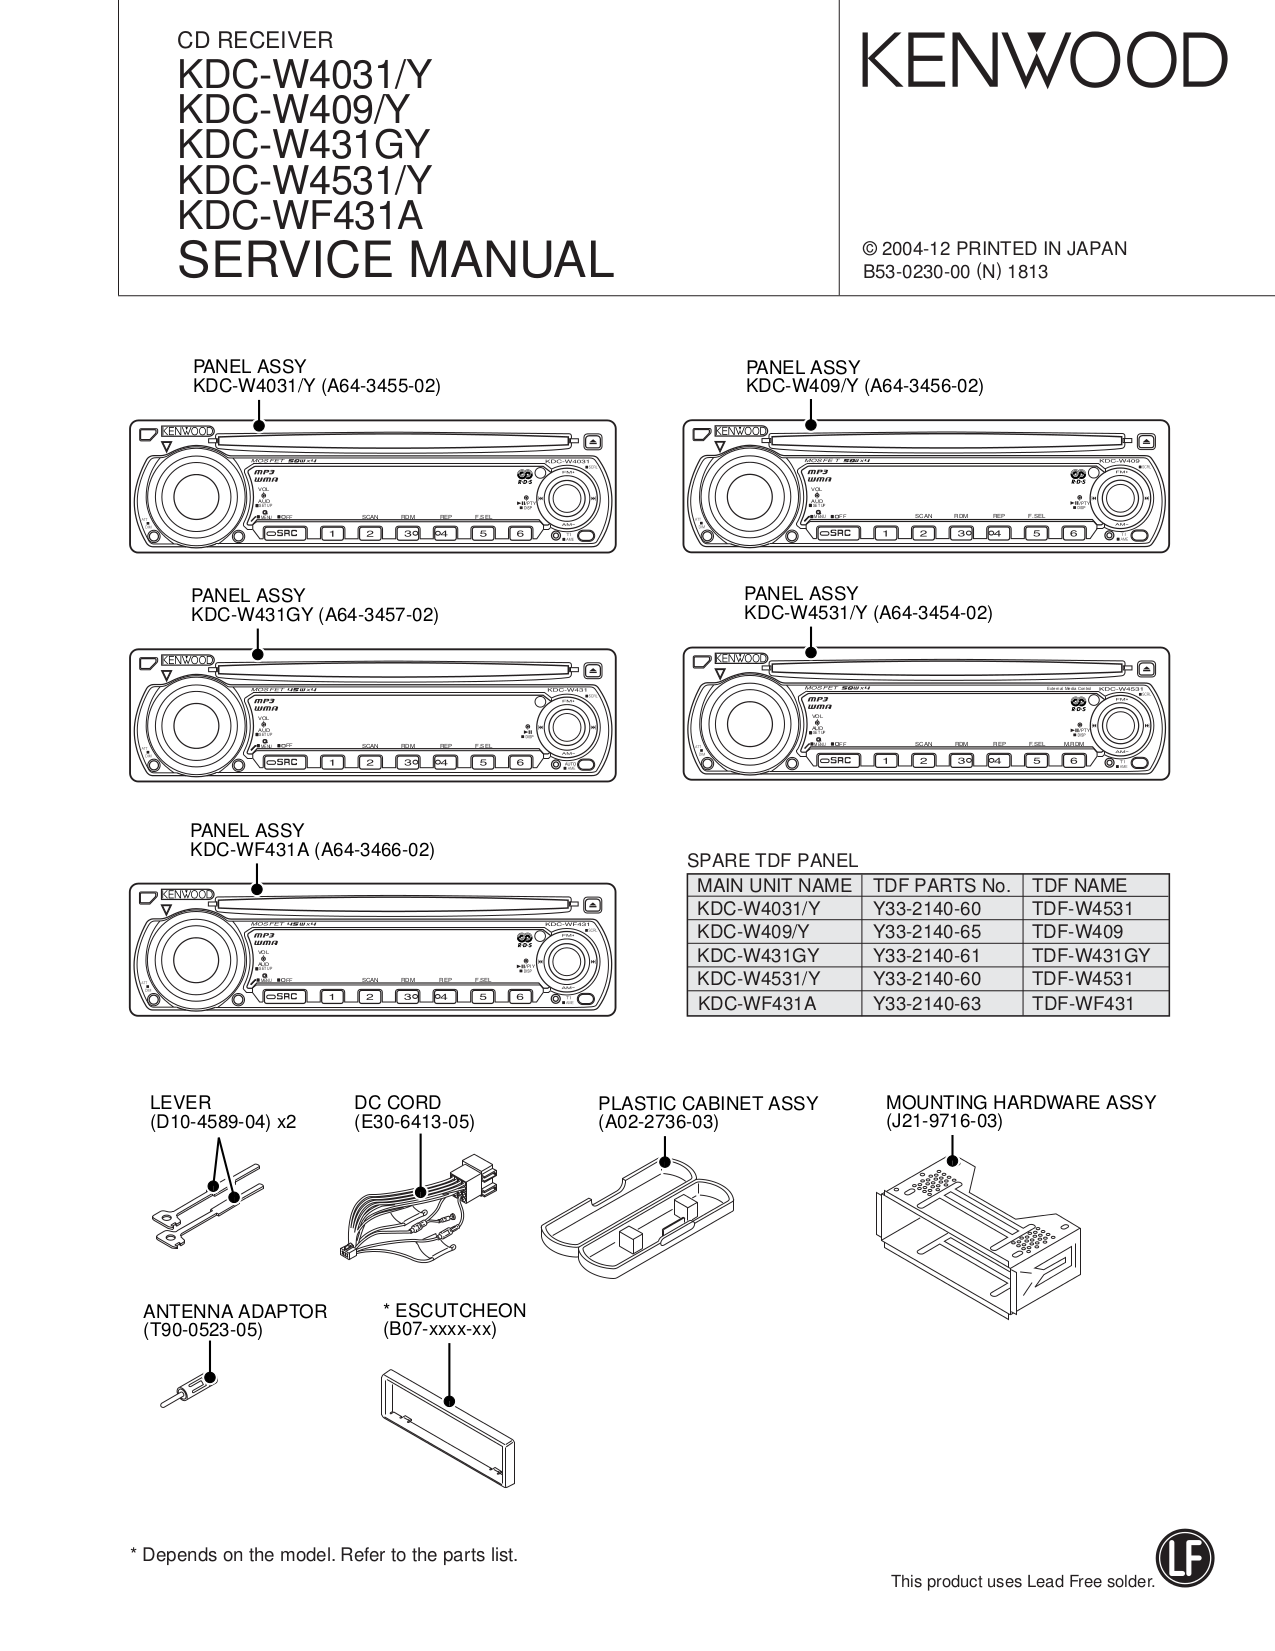 KDC W4031_W409_W431GY_W4531_WF431A.pdf 0 download free pdf for kenwood kdc 222 car receiver manual kenwood kdc 122 wiring diagram at creativeand.co